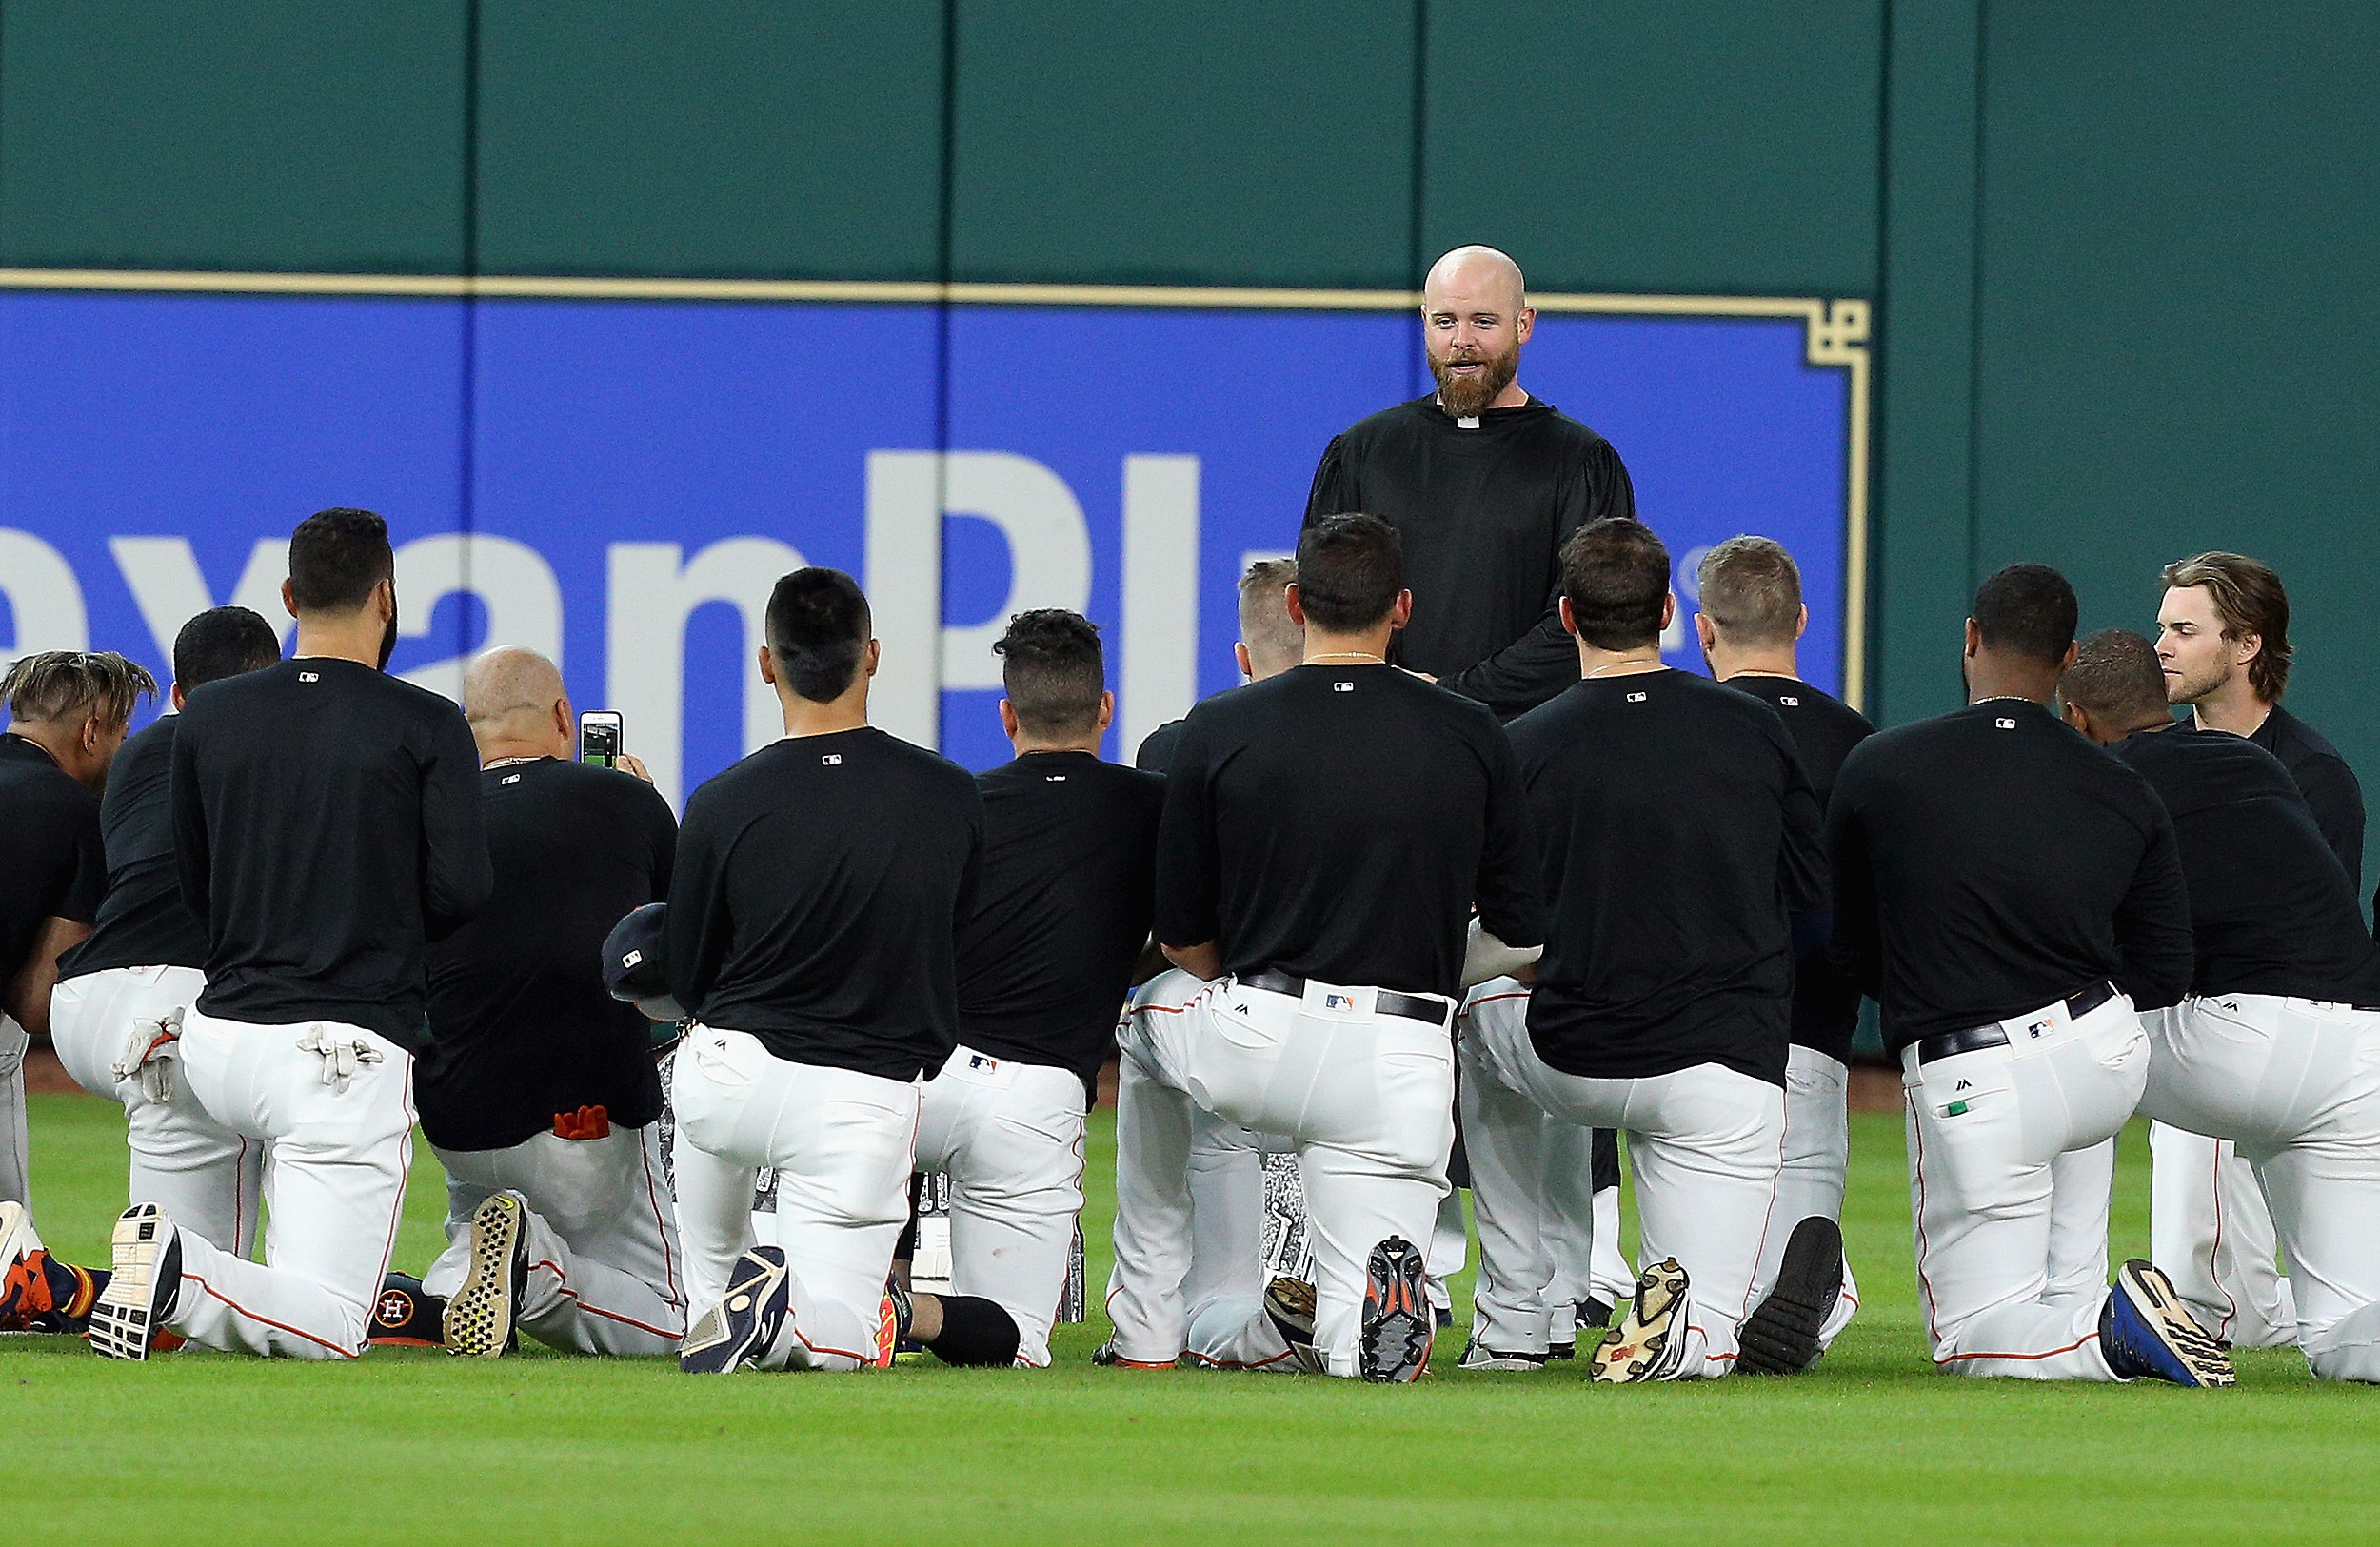 Astros hold 'funeral' for Carlos Beltran's outfield glove